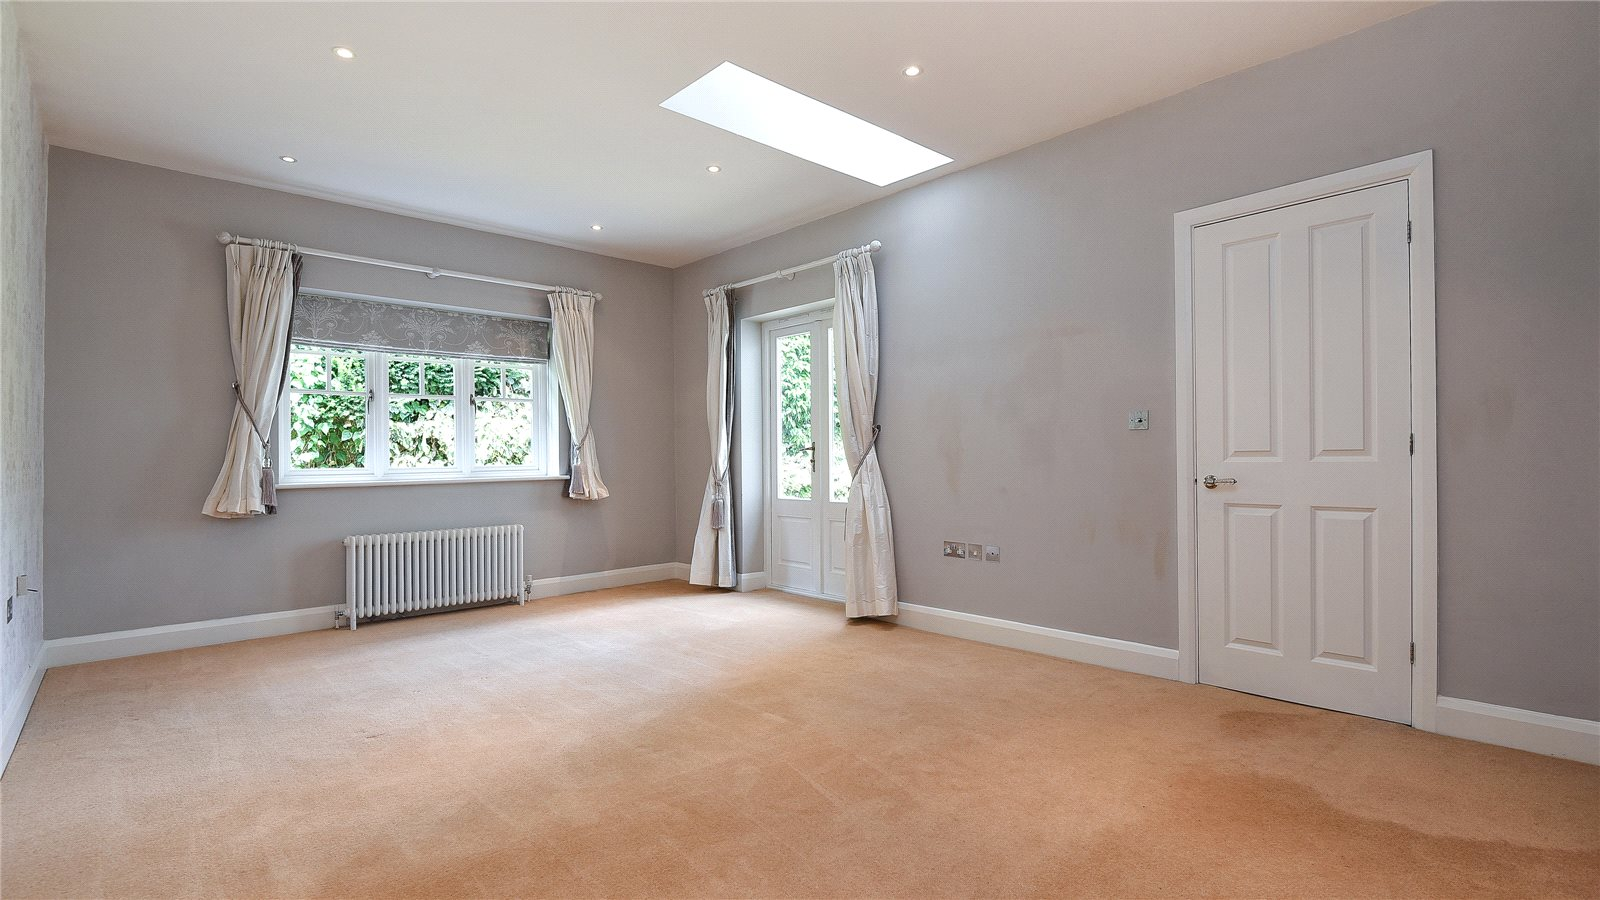 Additional photo for property listing at School Lane, Chalfont St Peter, Gerrards Cross, Buckinghamshire, SL9 Gerrards Cross, Αγγλια